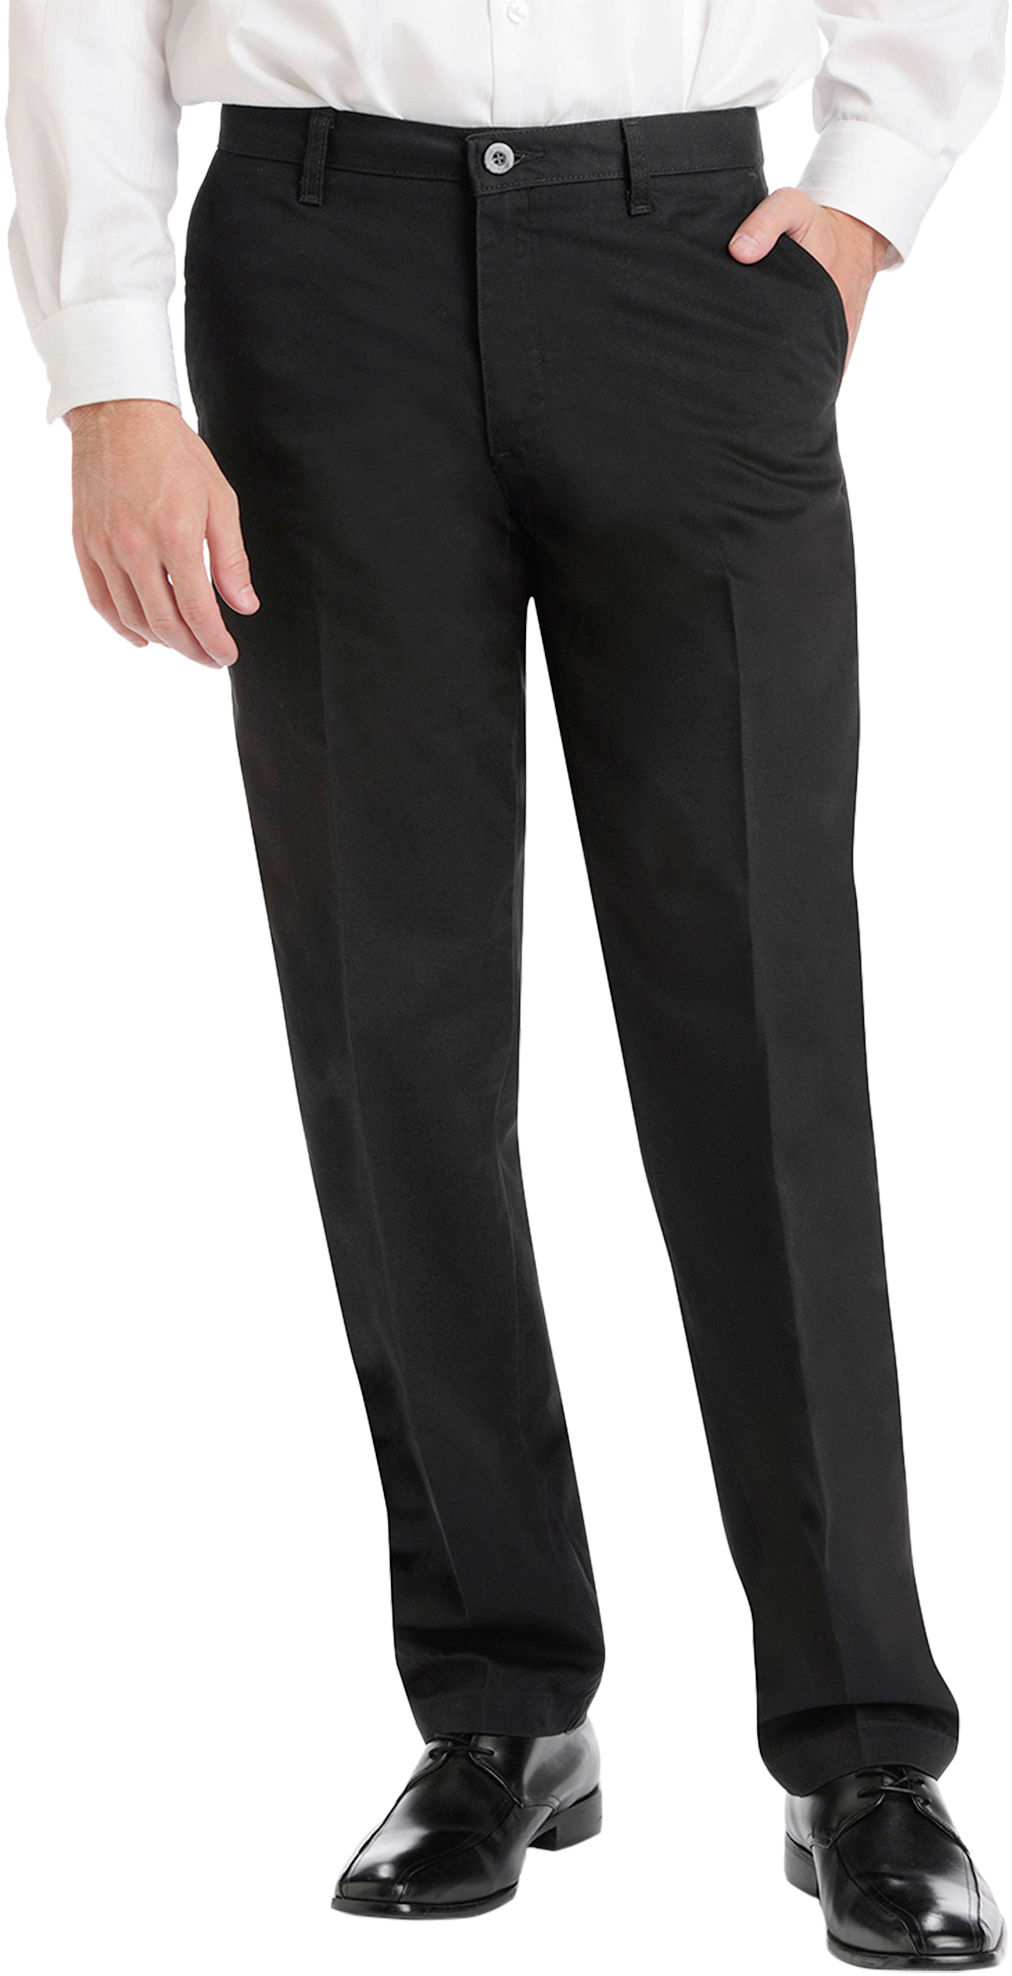 Mens Big & Tall Architect® premium no-iron stretch pants with a flat front detail is the casual piece for any man's closet. Features include a comfortable extender waist and button closure back pockets. 29 inch inseam. 99% Cotton. 1% Spandex.